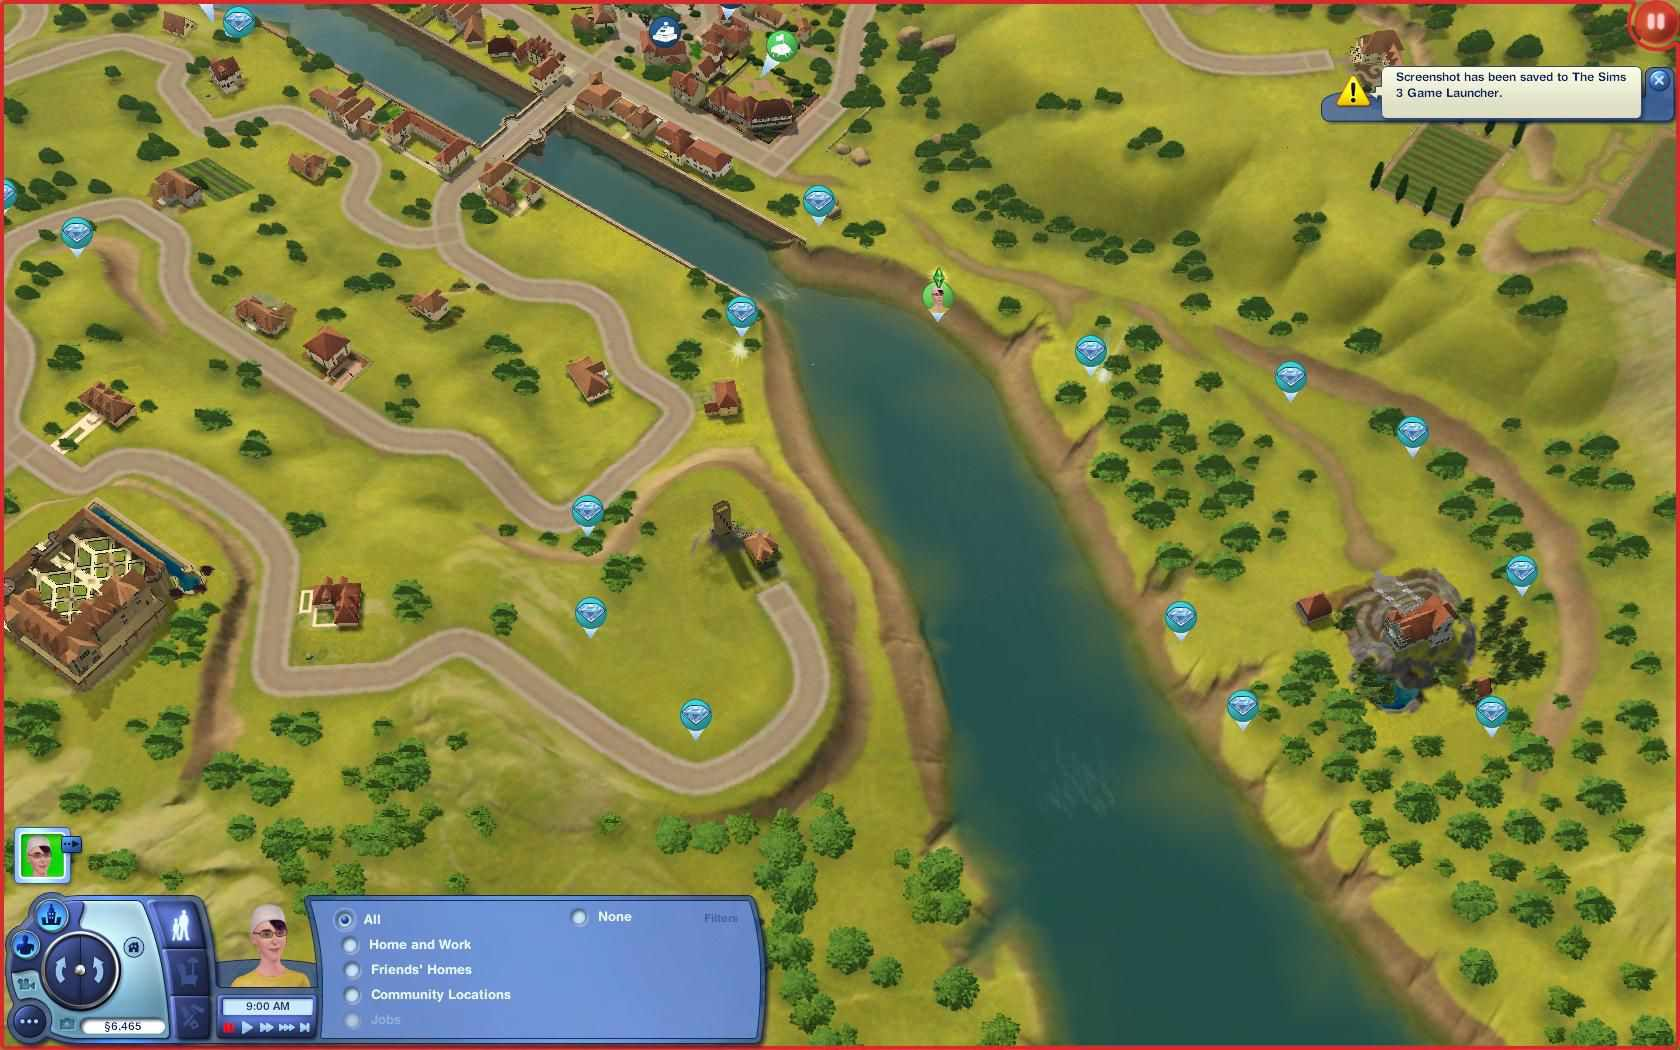 Sims 4 map eu countries map the sims 3 world adventures collecting guide maps francemetalgem1 mapsphp sims 4 map sims 4 map gumiabroncs Choice Image